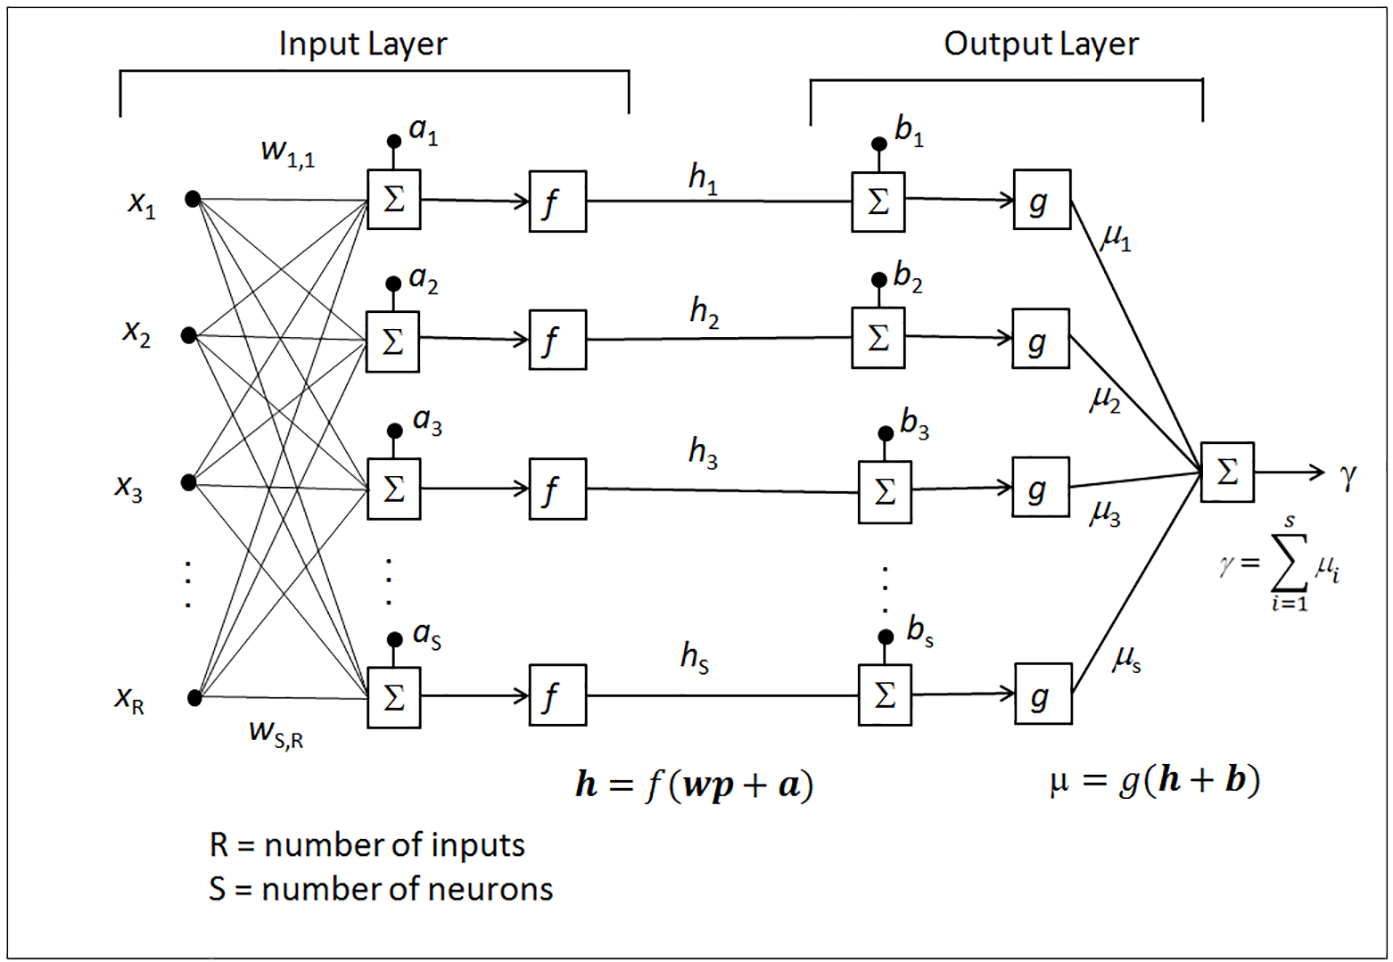 Figure 2: The architecture of Levenberg-Marquardt error-correction learning neural network.